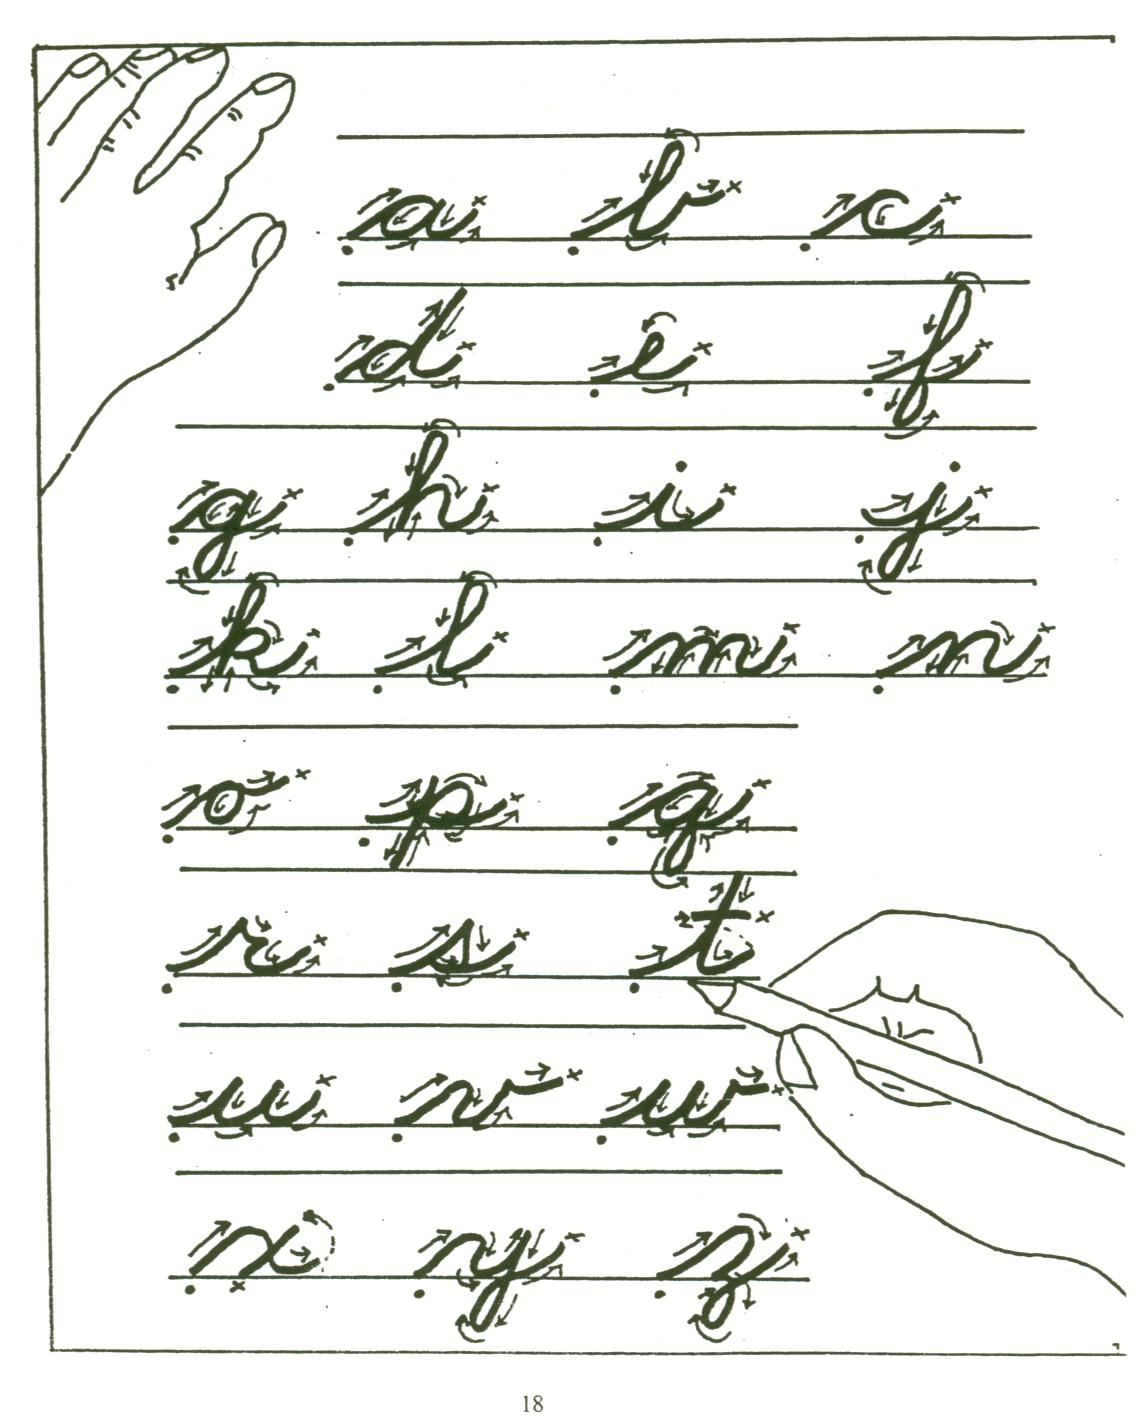 all the letters in cursive is verbal communication becoming extinct debi drecksler 866